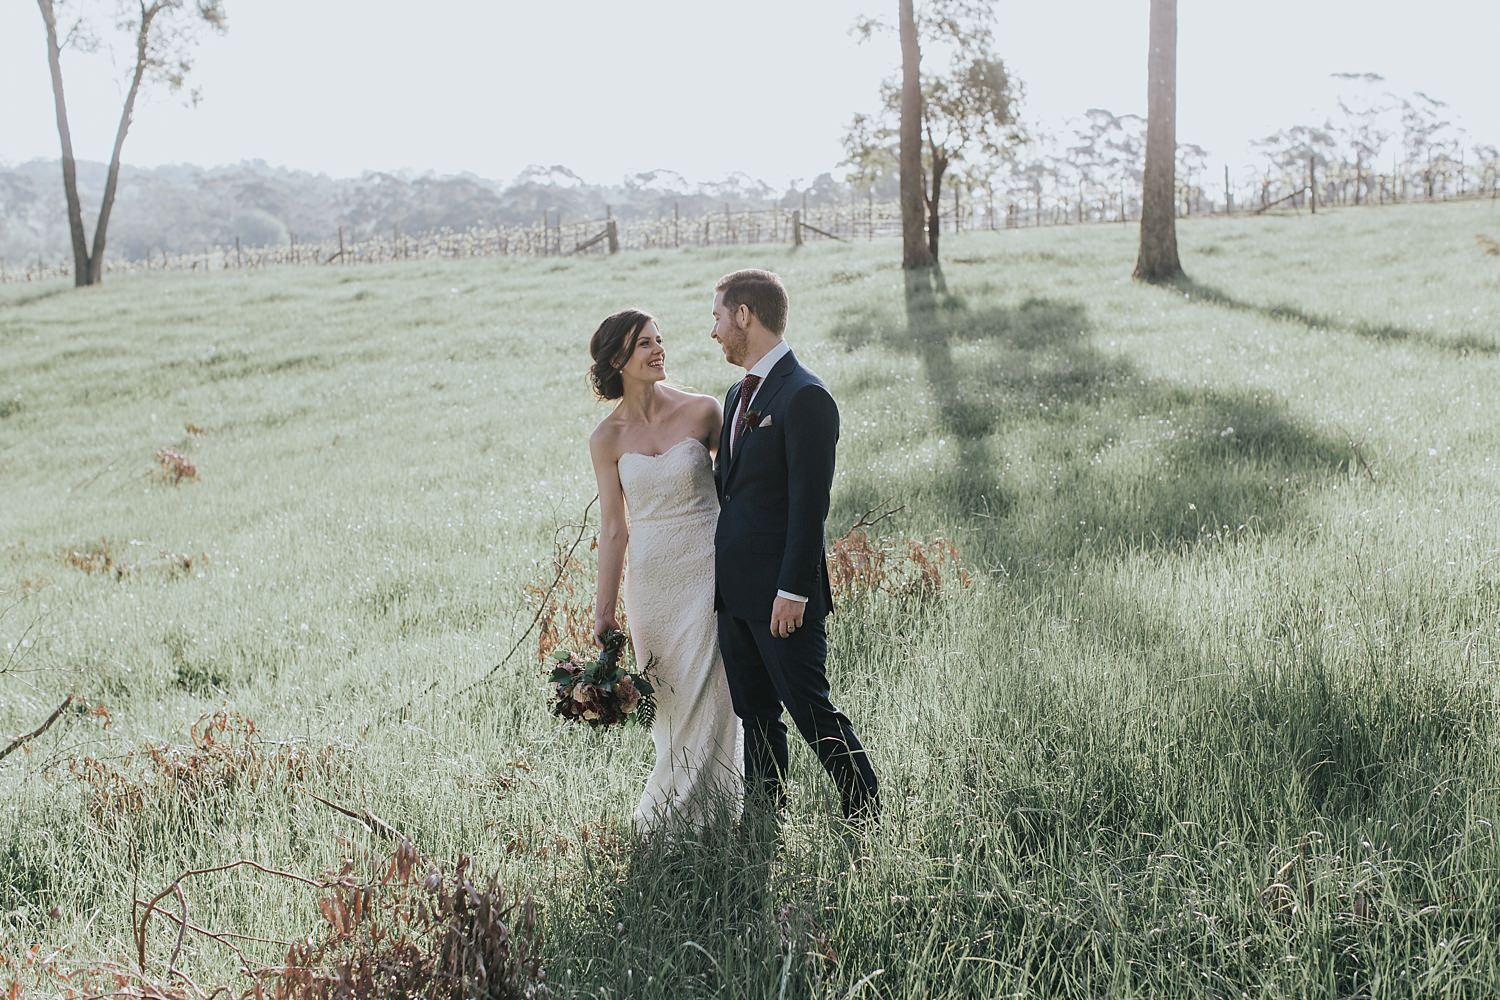 centennial vineyards wedding photographer jonathan david